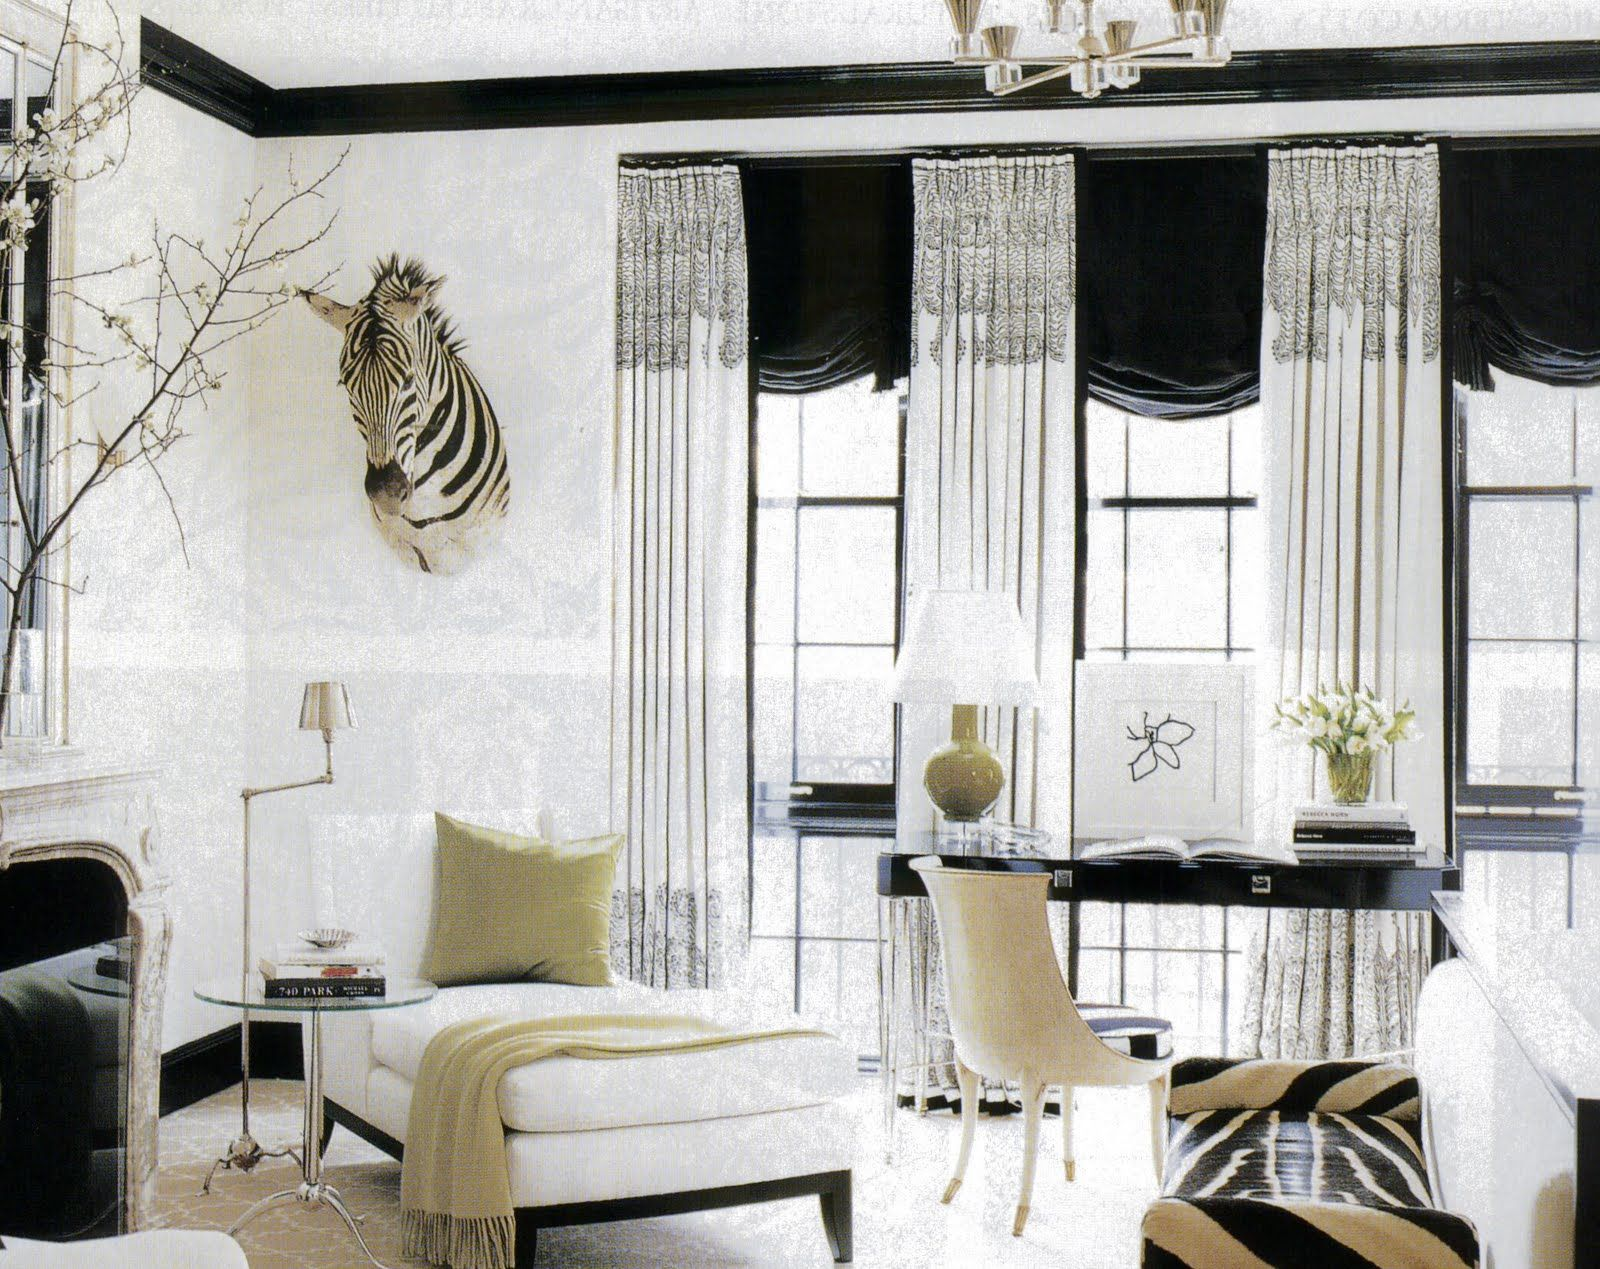 I Simply Adore These Paisley Curtains Beautiful Room By Brian Mccarthy Elle Decor Bedroom With Sitting Area Home Elle Decor